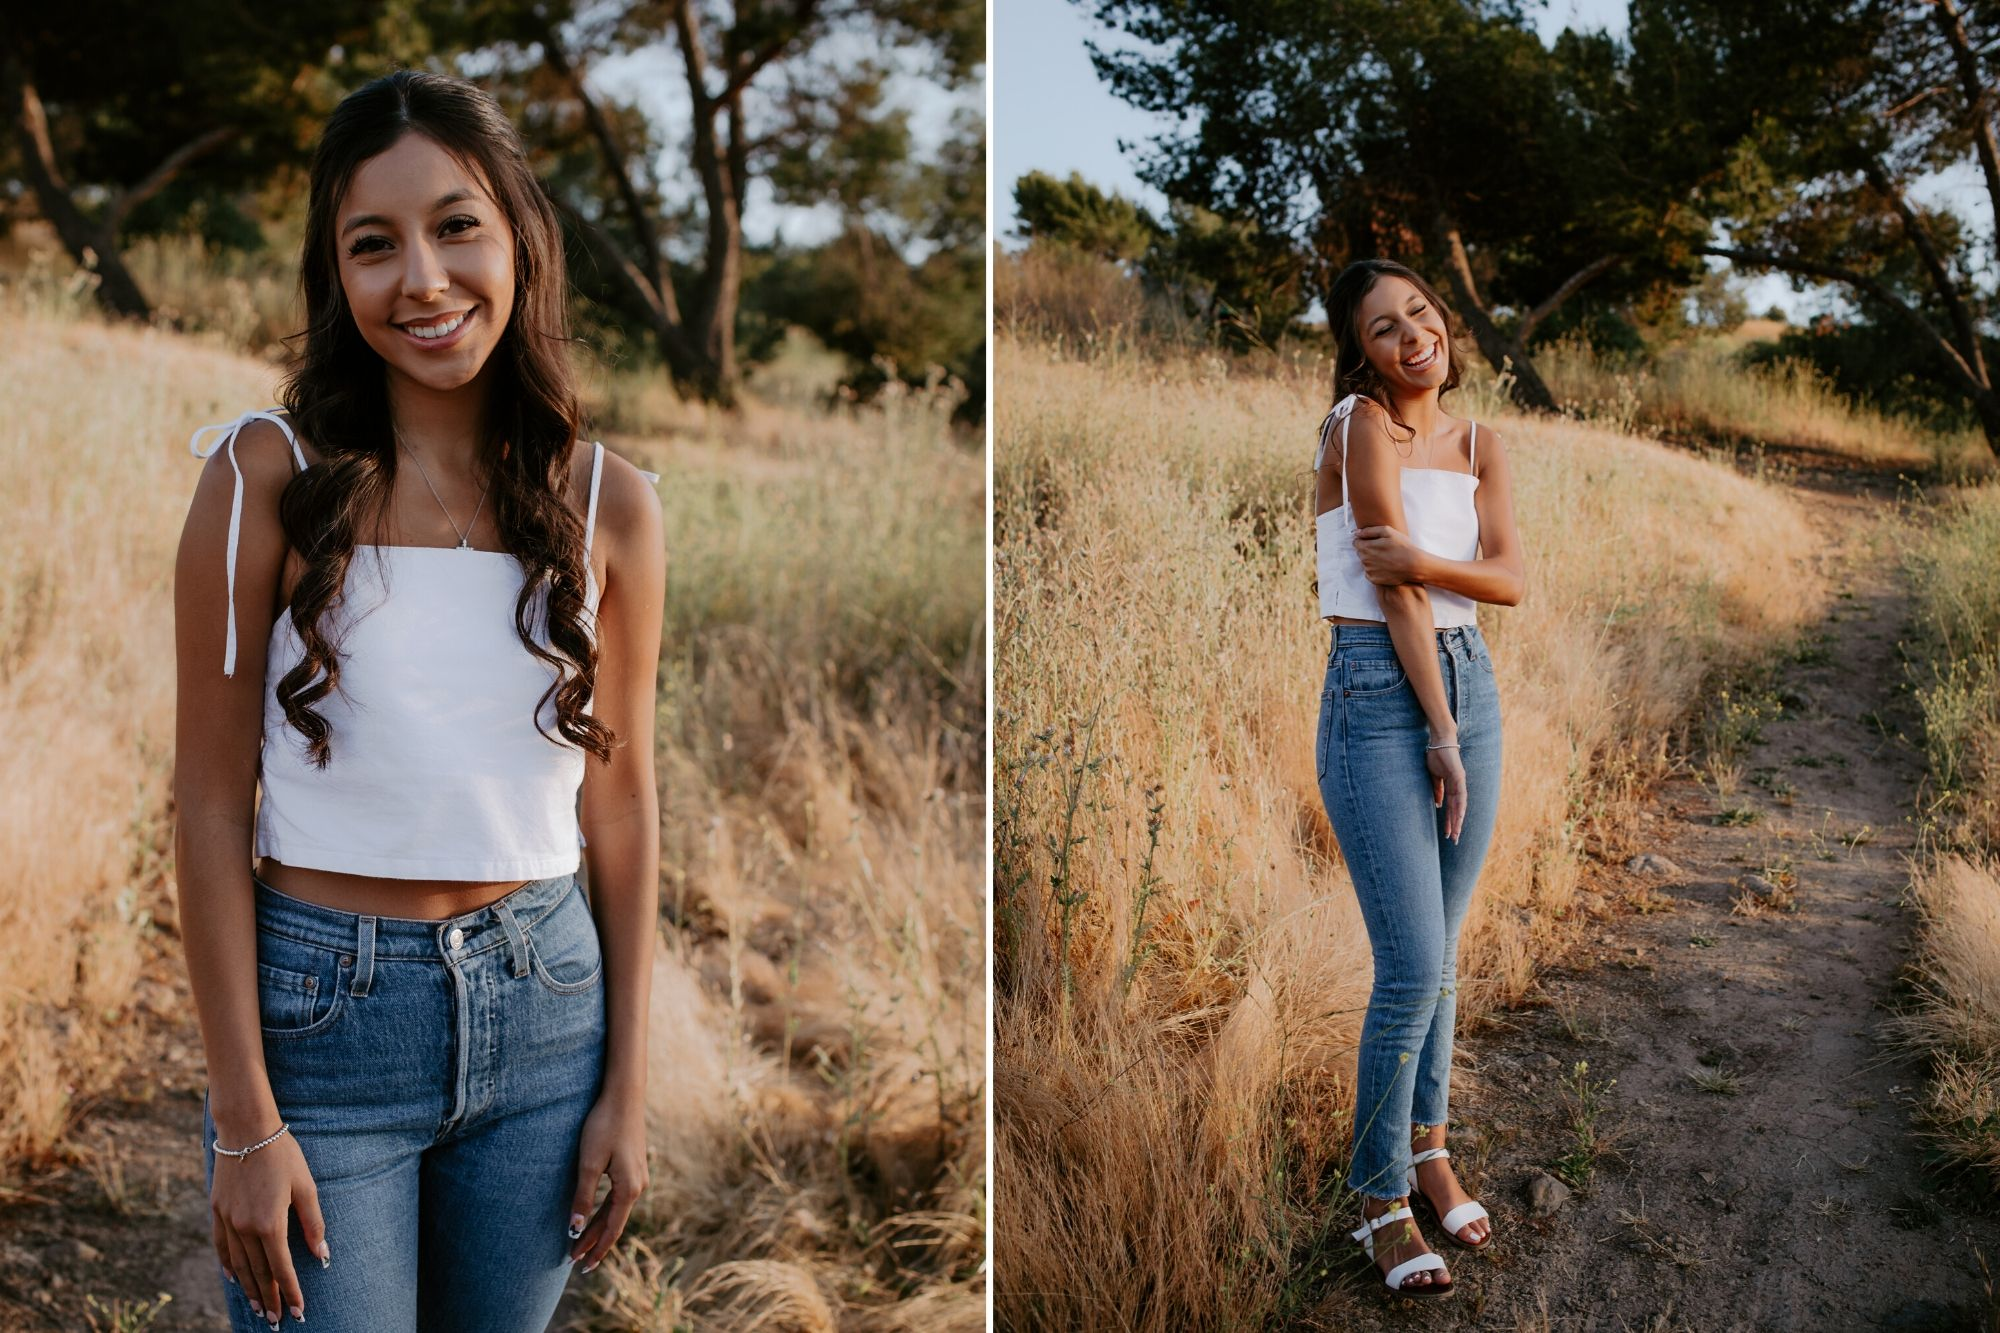 Bonelli Park Senior Photos San Dimas